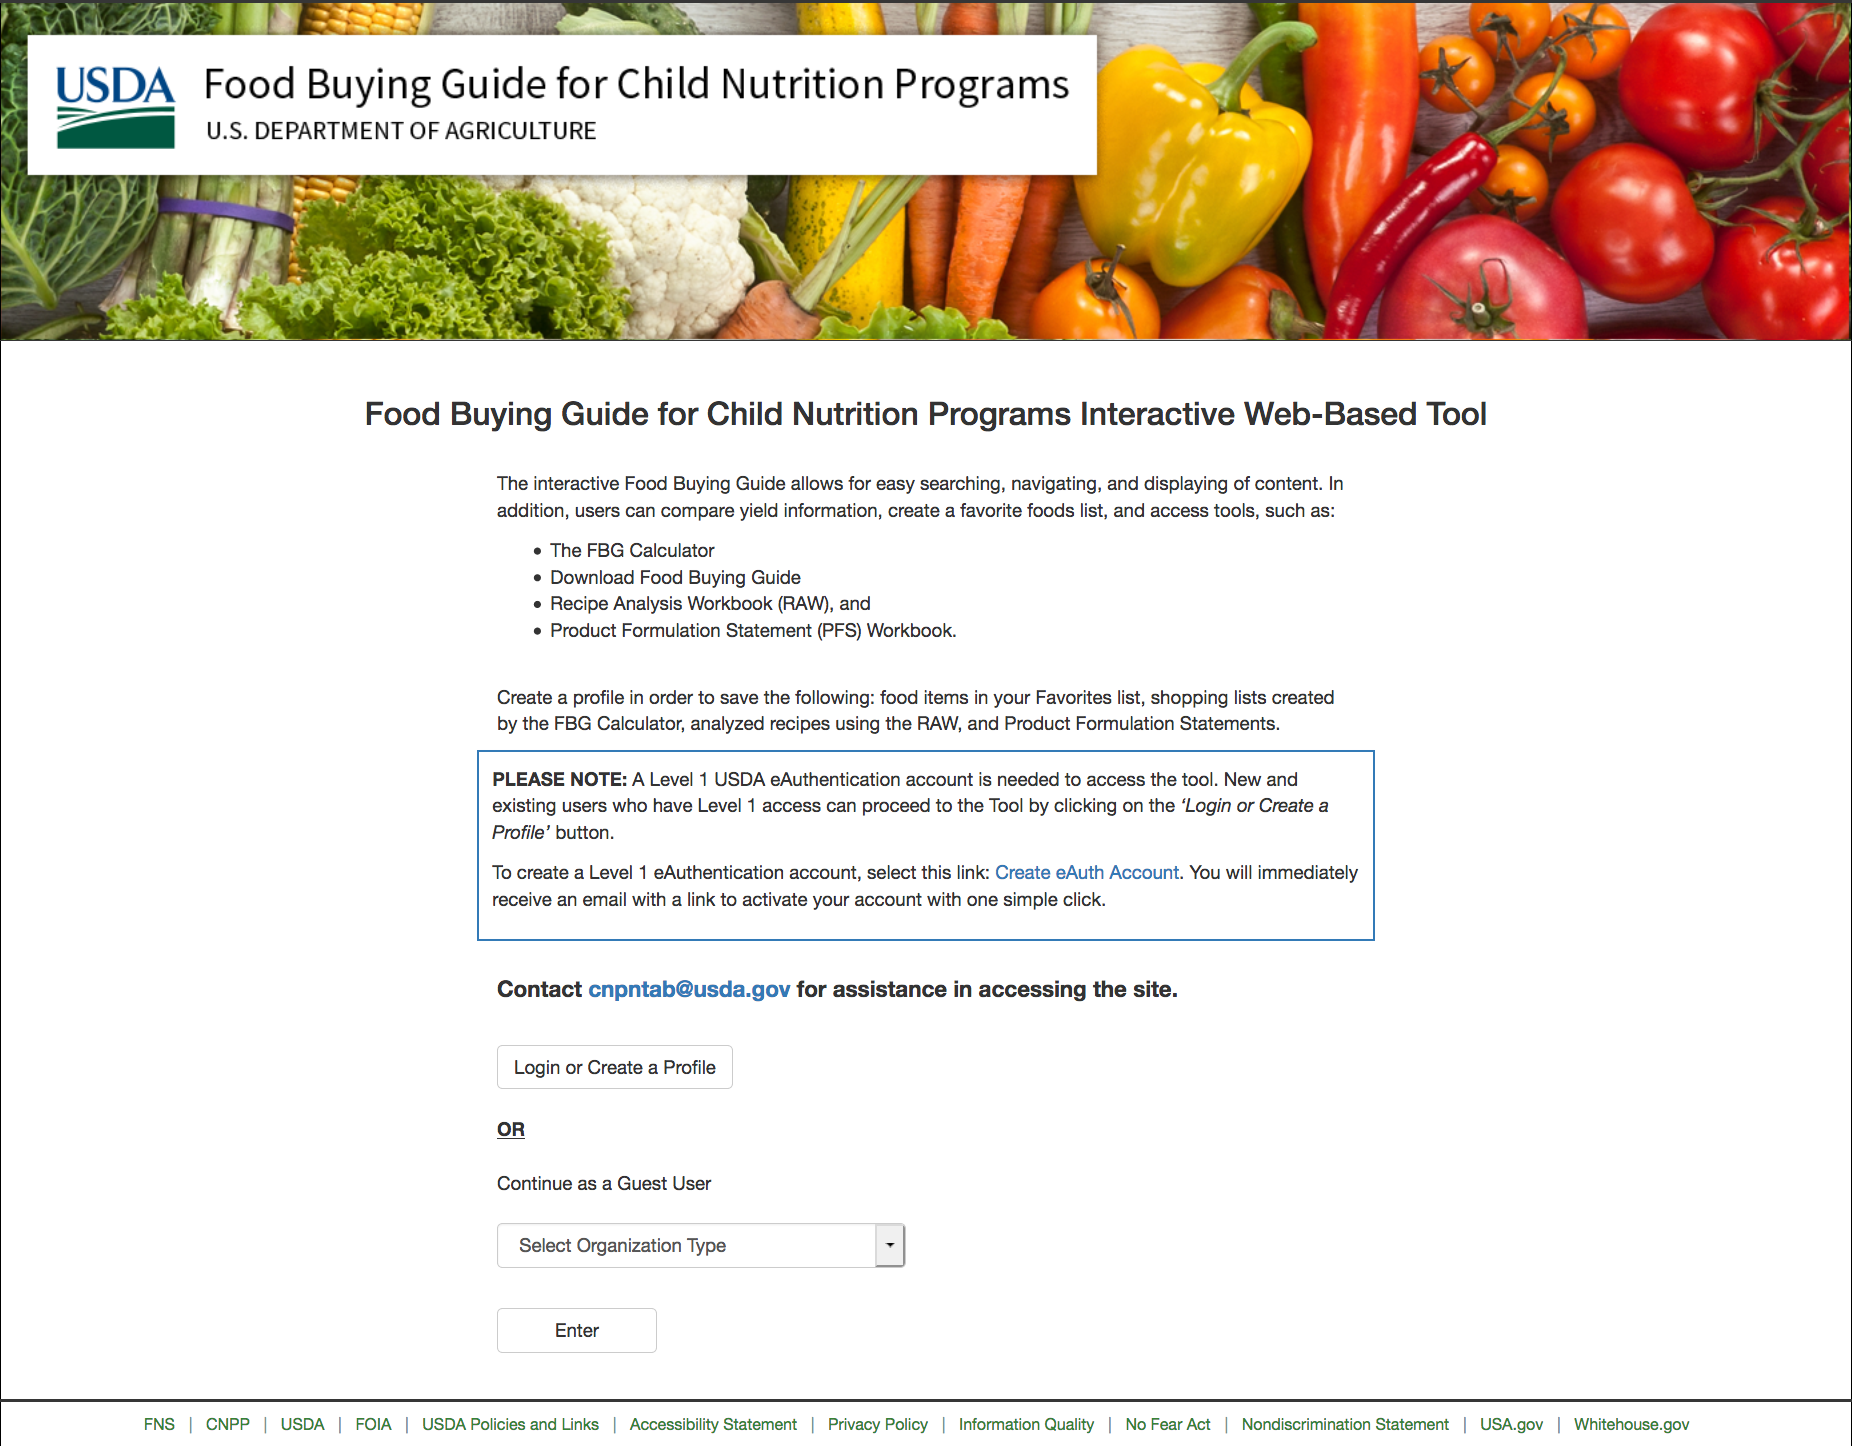 Food Buying Guide Home Page